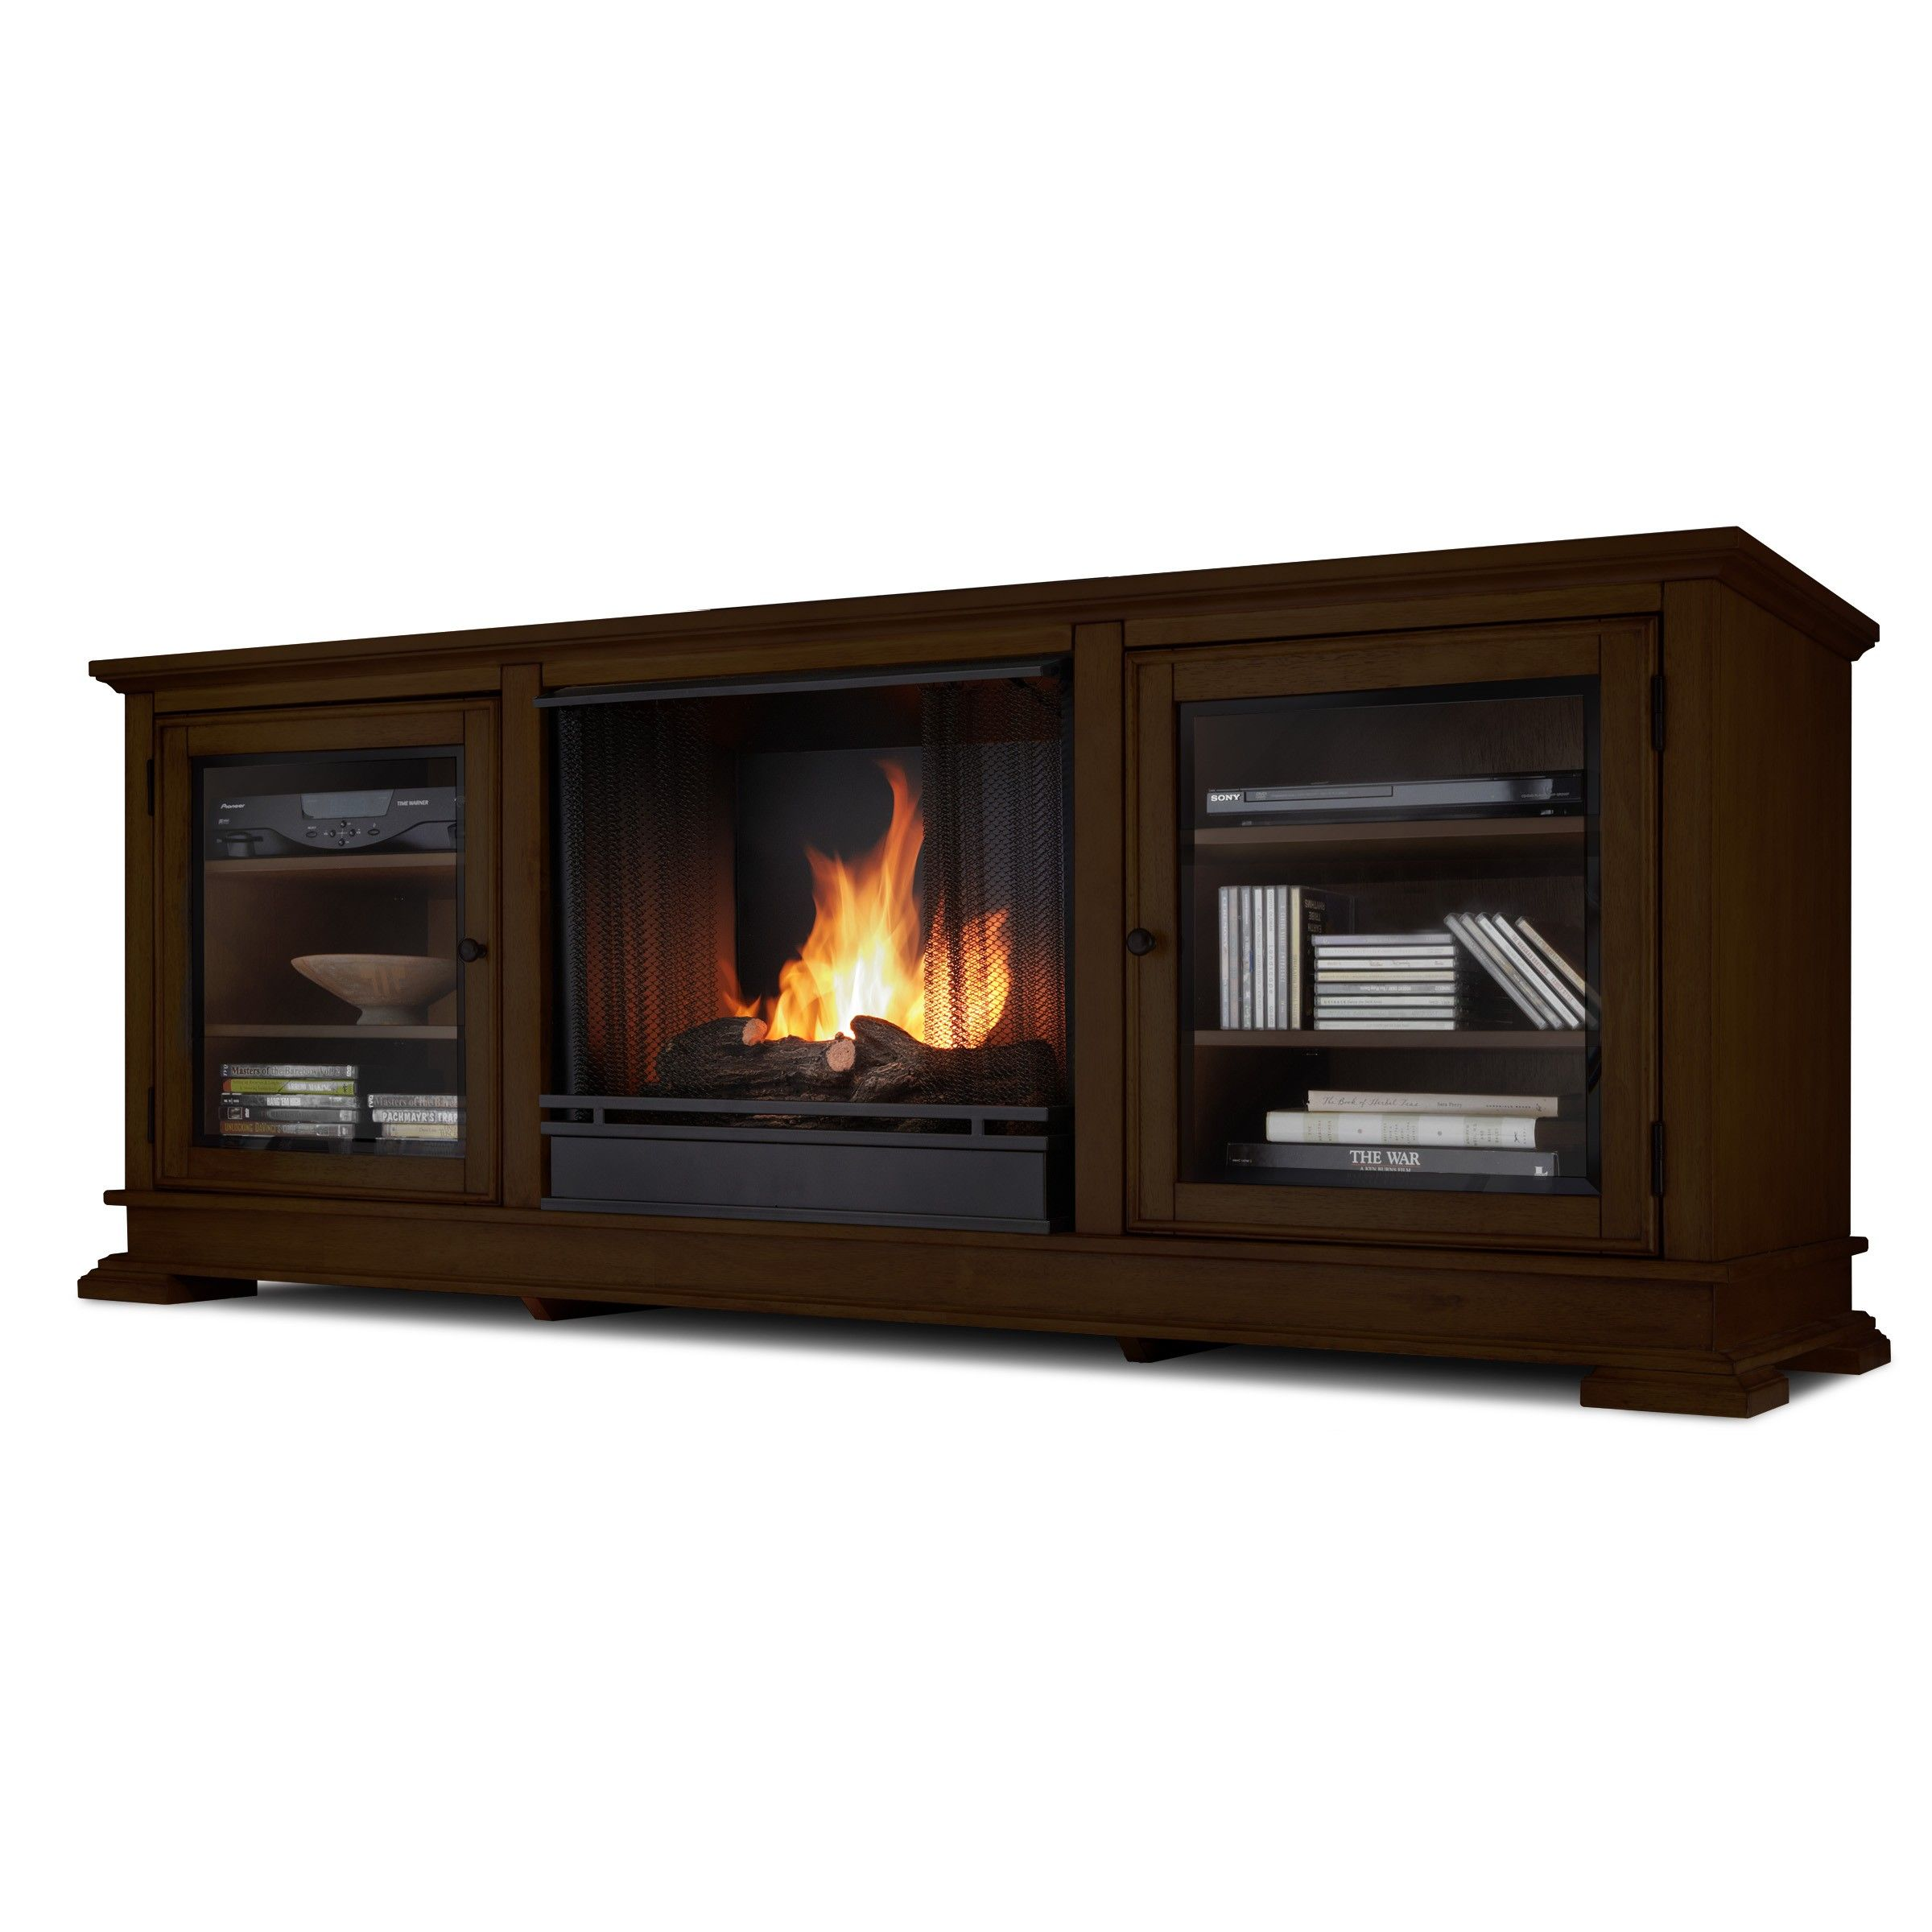 Classic flame belmont 60 quot tv stand with electric fireplace - Real Flame Hudson Espresso Entertainment Center With Gel Fireplace